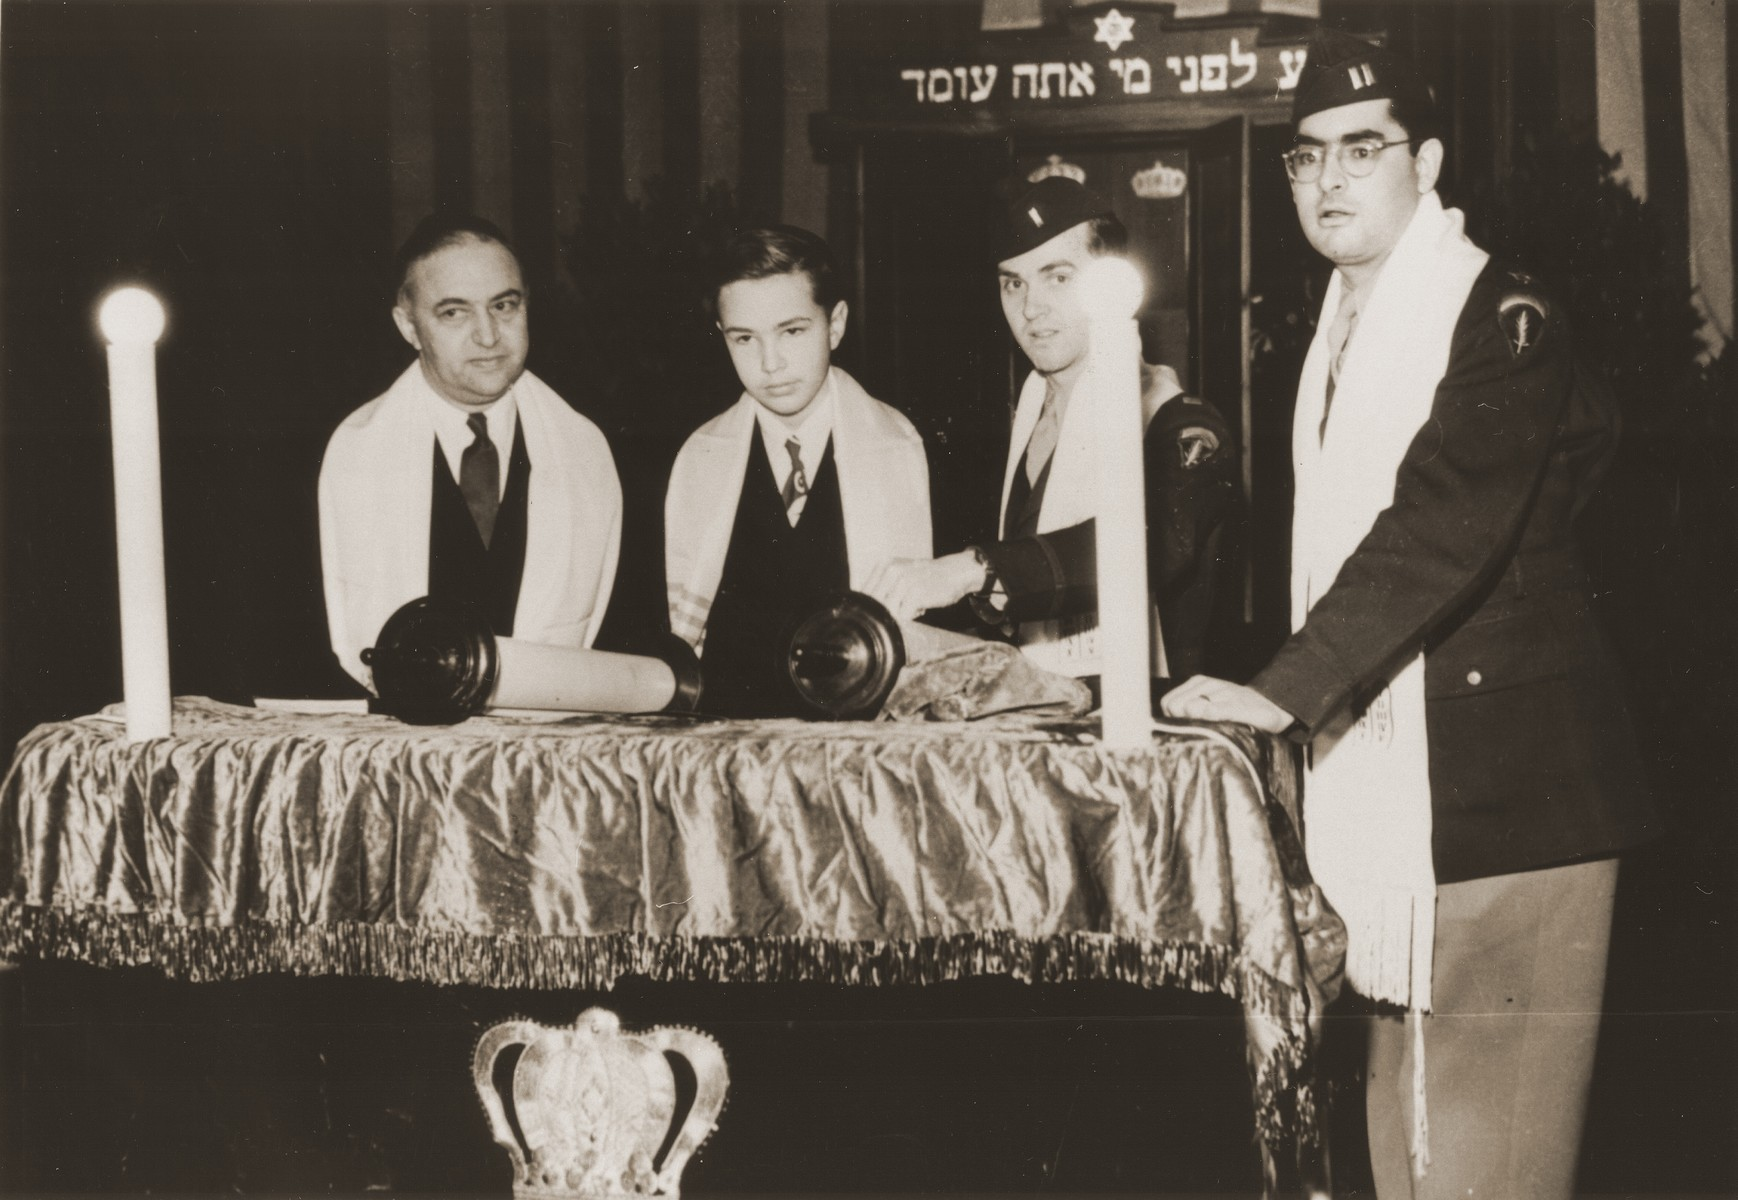 Stephen Bernstein, son of American chaplain Philip Bernstein, reads from the torah at his bar mitzvah at the Philanthropin School in Frankfurt, Germany.  Pictured from left to right are Rabbi Philip Bernstein, Stephen Bernstein, Rabbi Mayer Abramowitz, and Rabbi Herbert Friedman.